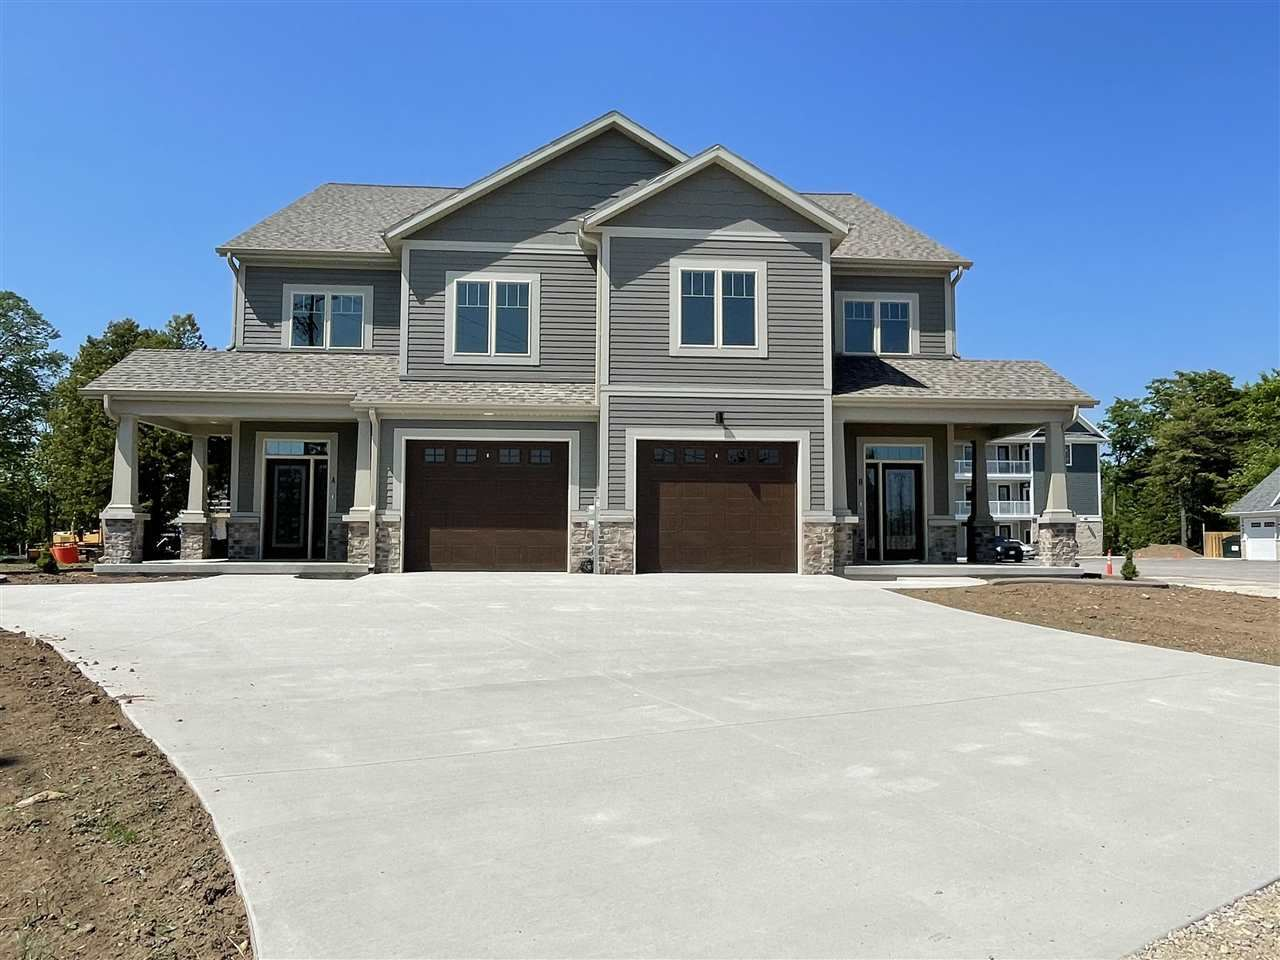 10601 SHORE VIEW Place #A, Sister Bay, WI 54234 - MLS#: 50233748